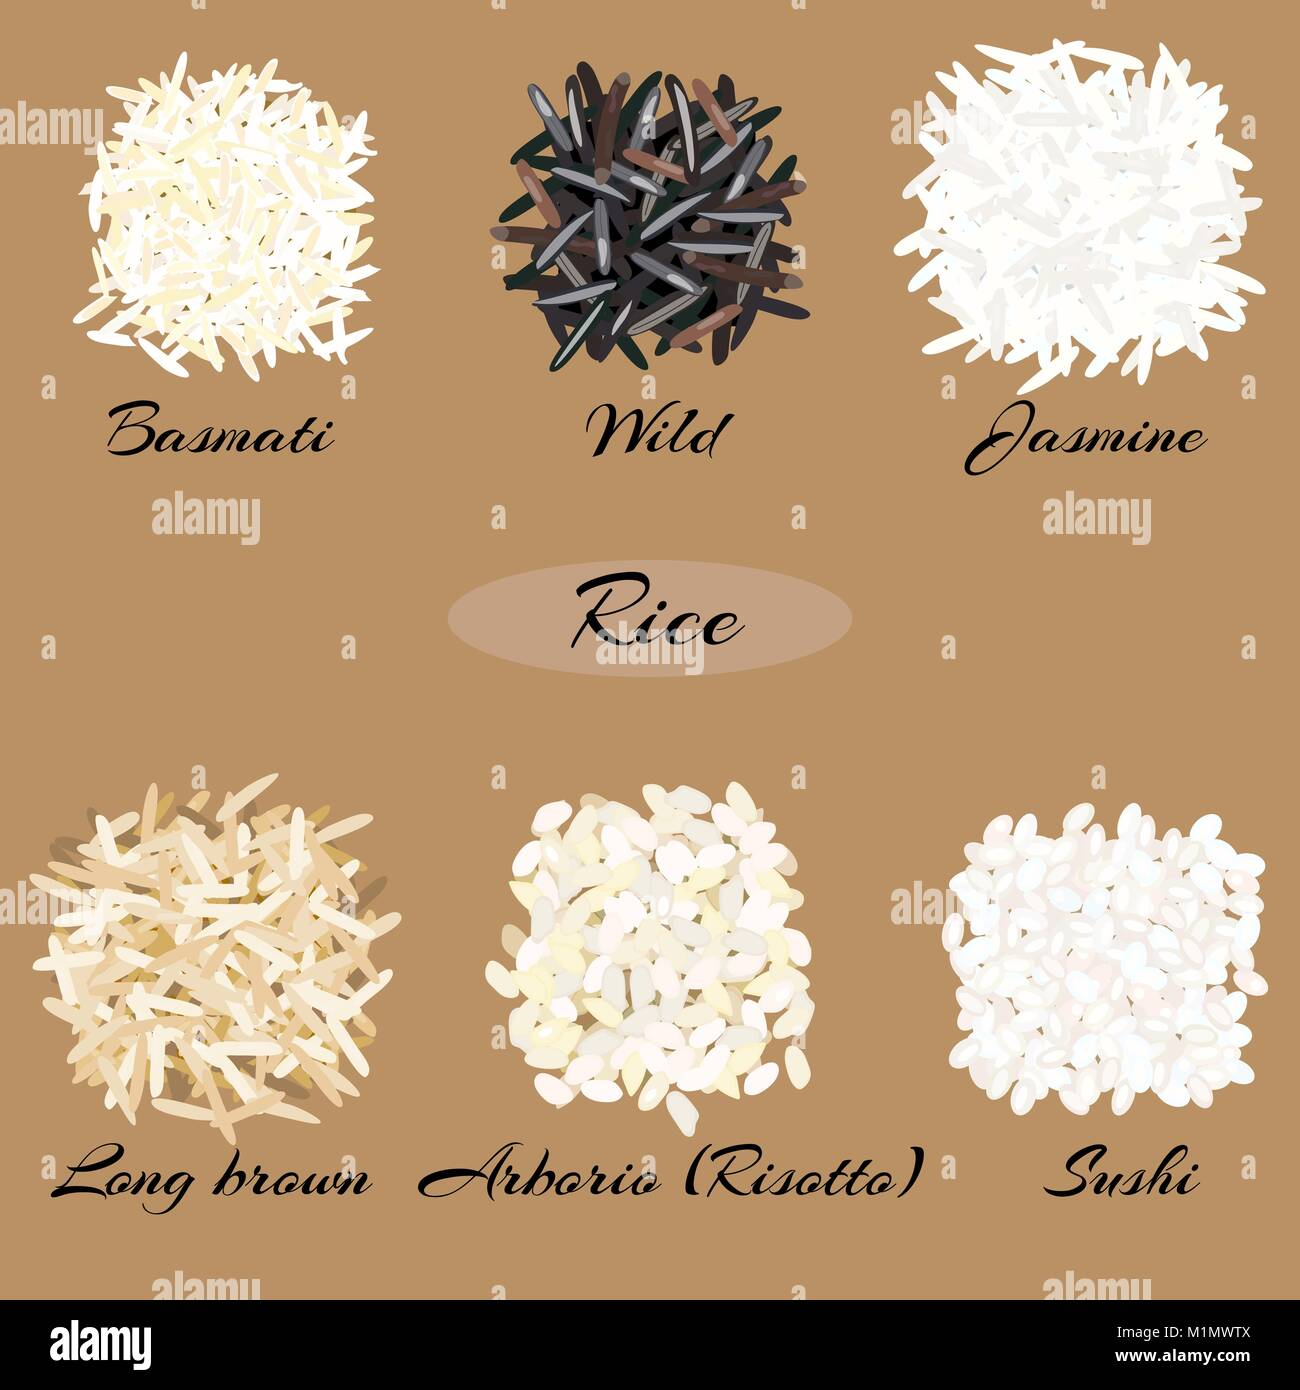 Different types of rice. - Stock Vector